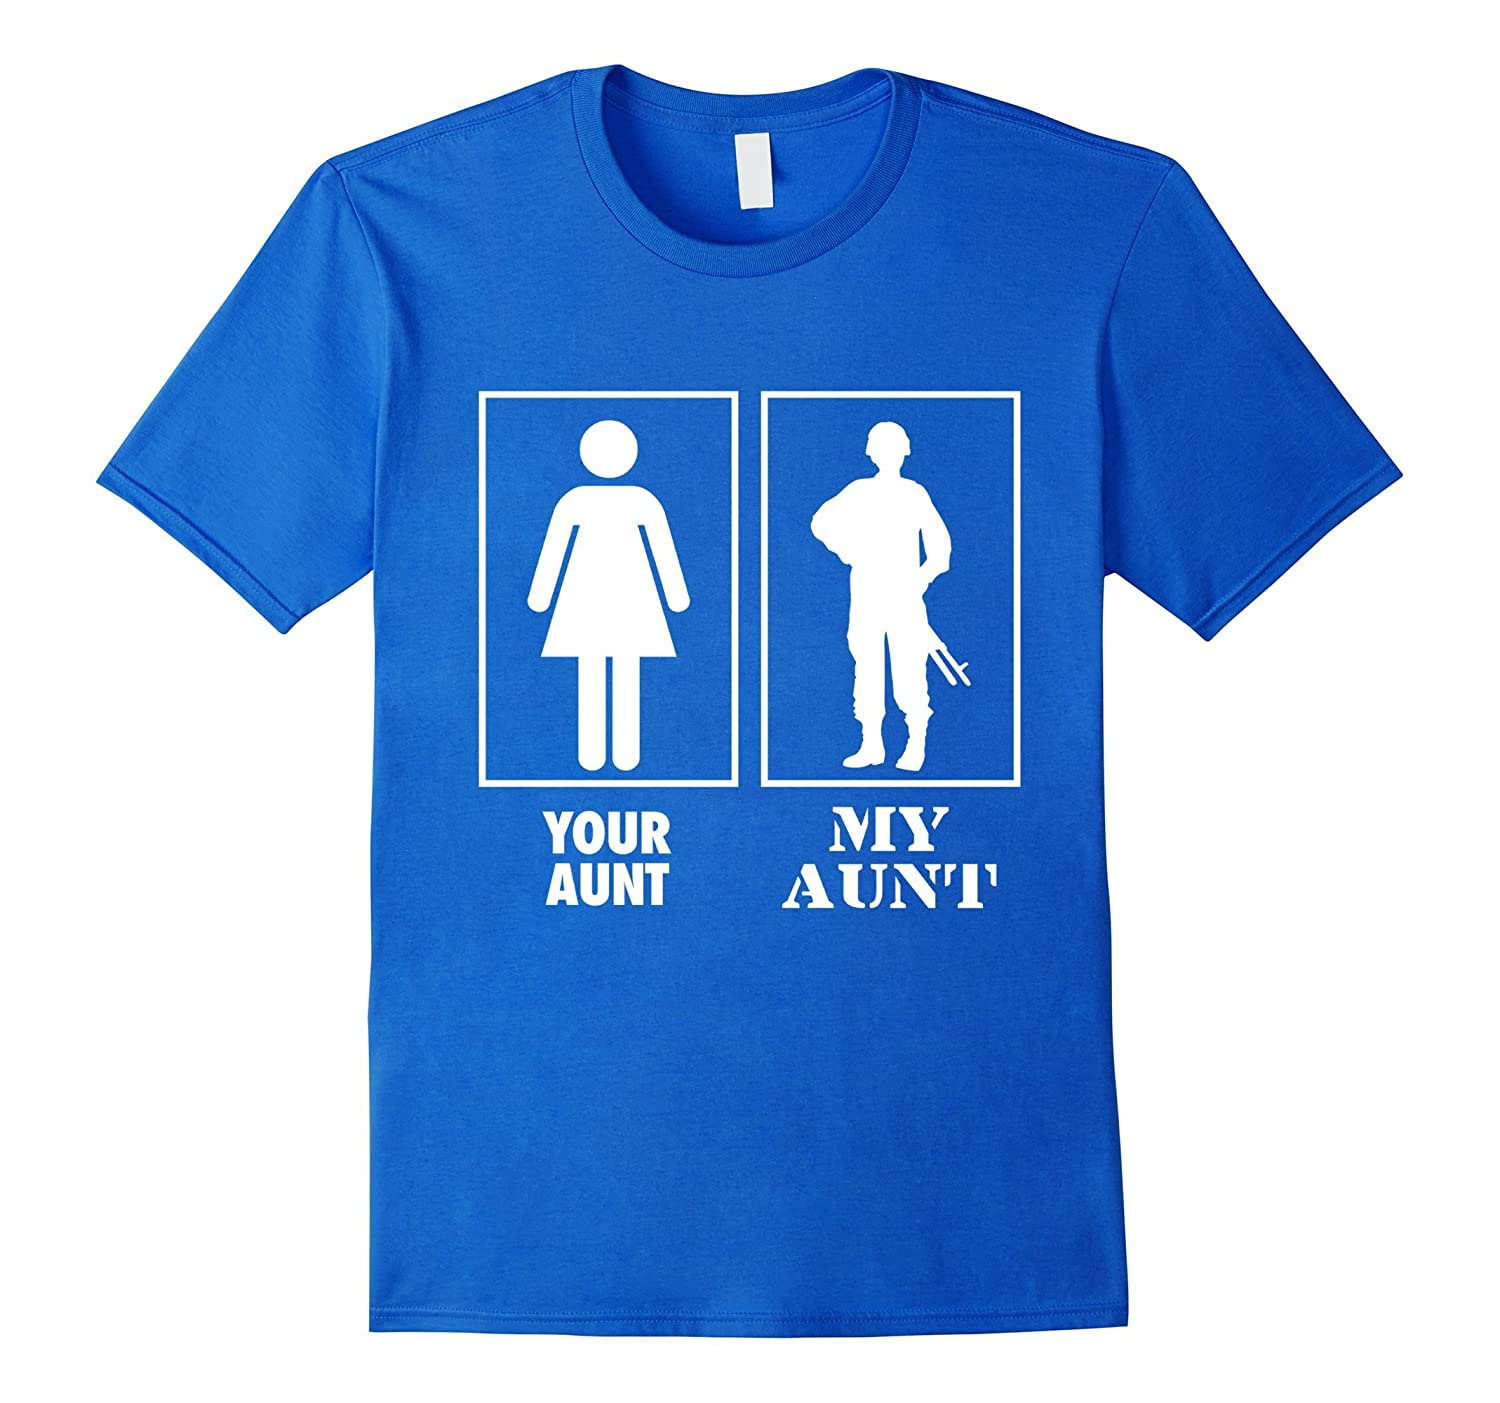 Your Aunt My Aunt Military Proud Army Navy Air Force Soldier